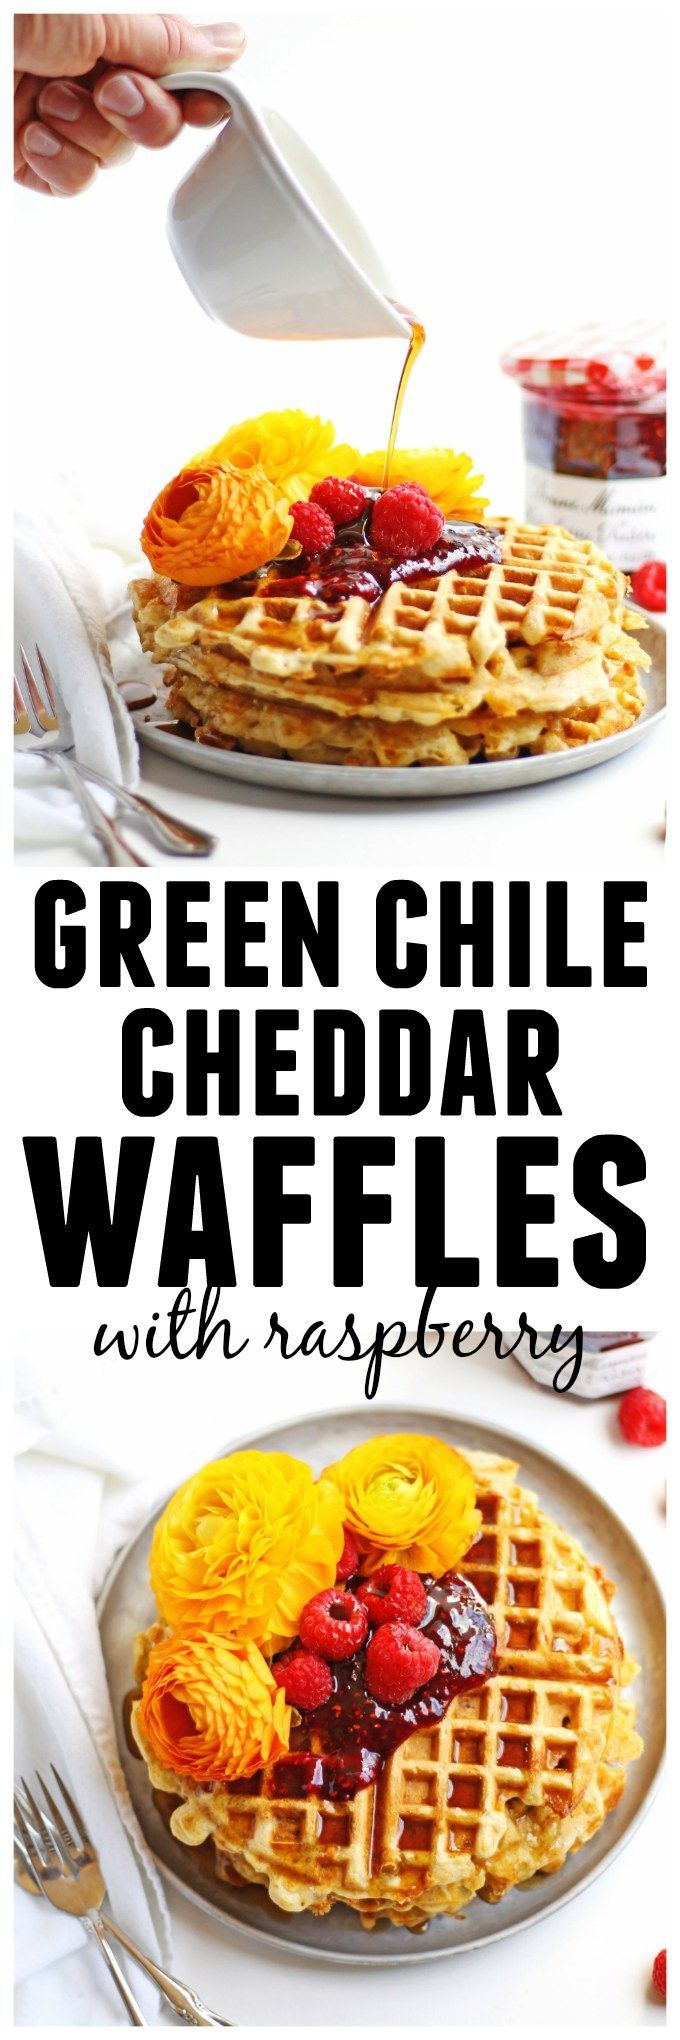 Cheesy green chile cornbread waffles with raspberry preserves recipe! An amazing, savory waffle with cheddar, walnuts, and green chiles. YUM! // Rhubarbarians // brunch recipe / breakfast recipe #brunch